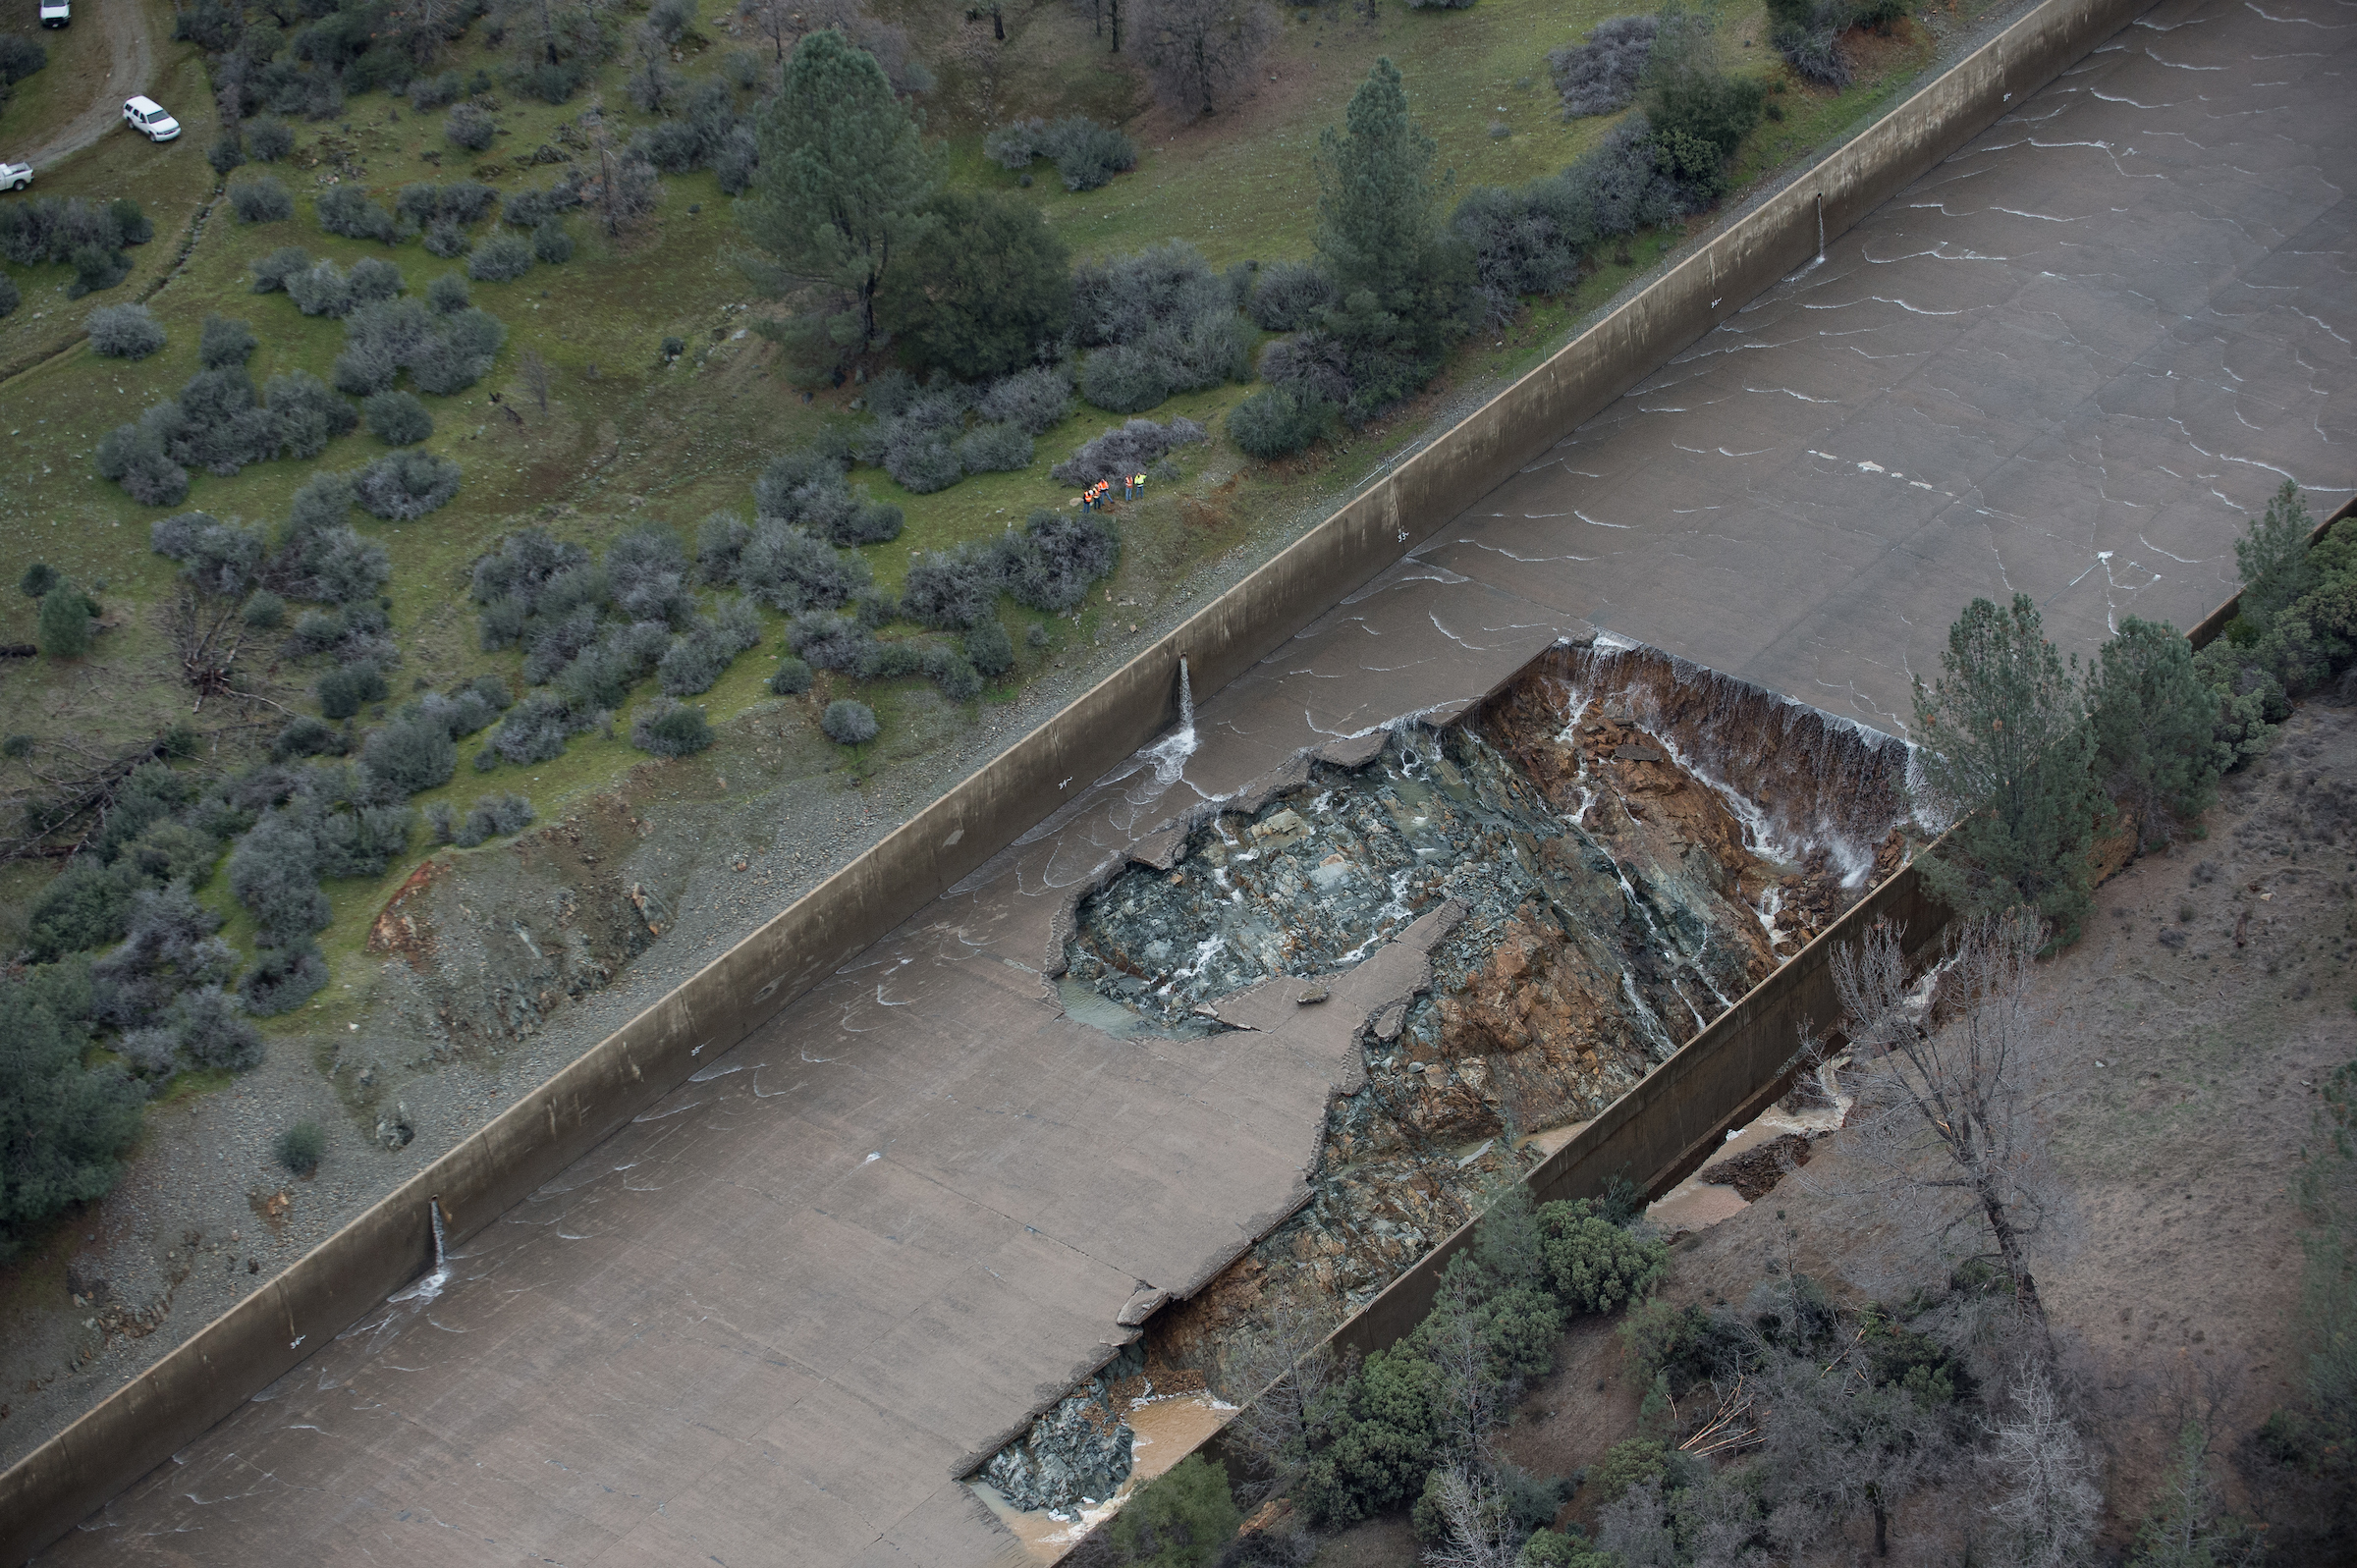 Oroville Update: Evacuation Advisory Finally Lifted | The